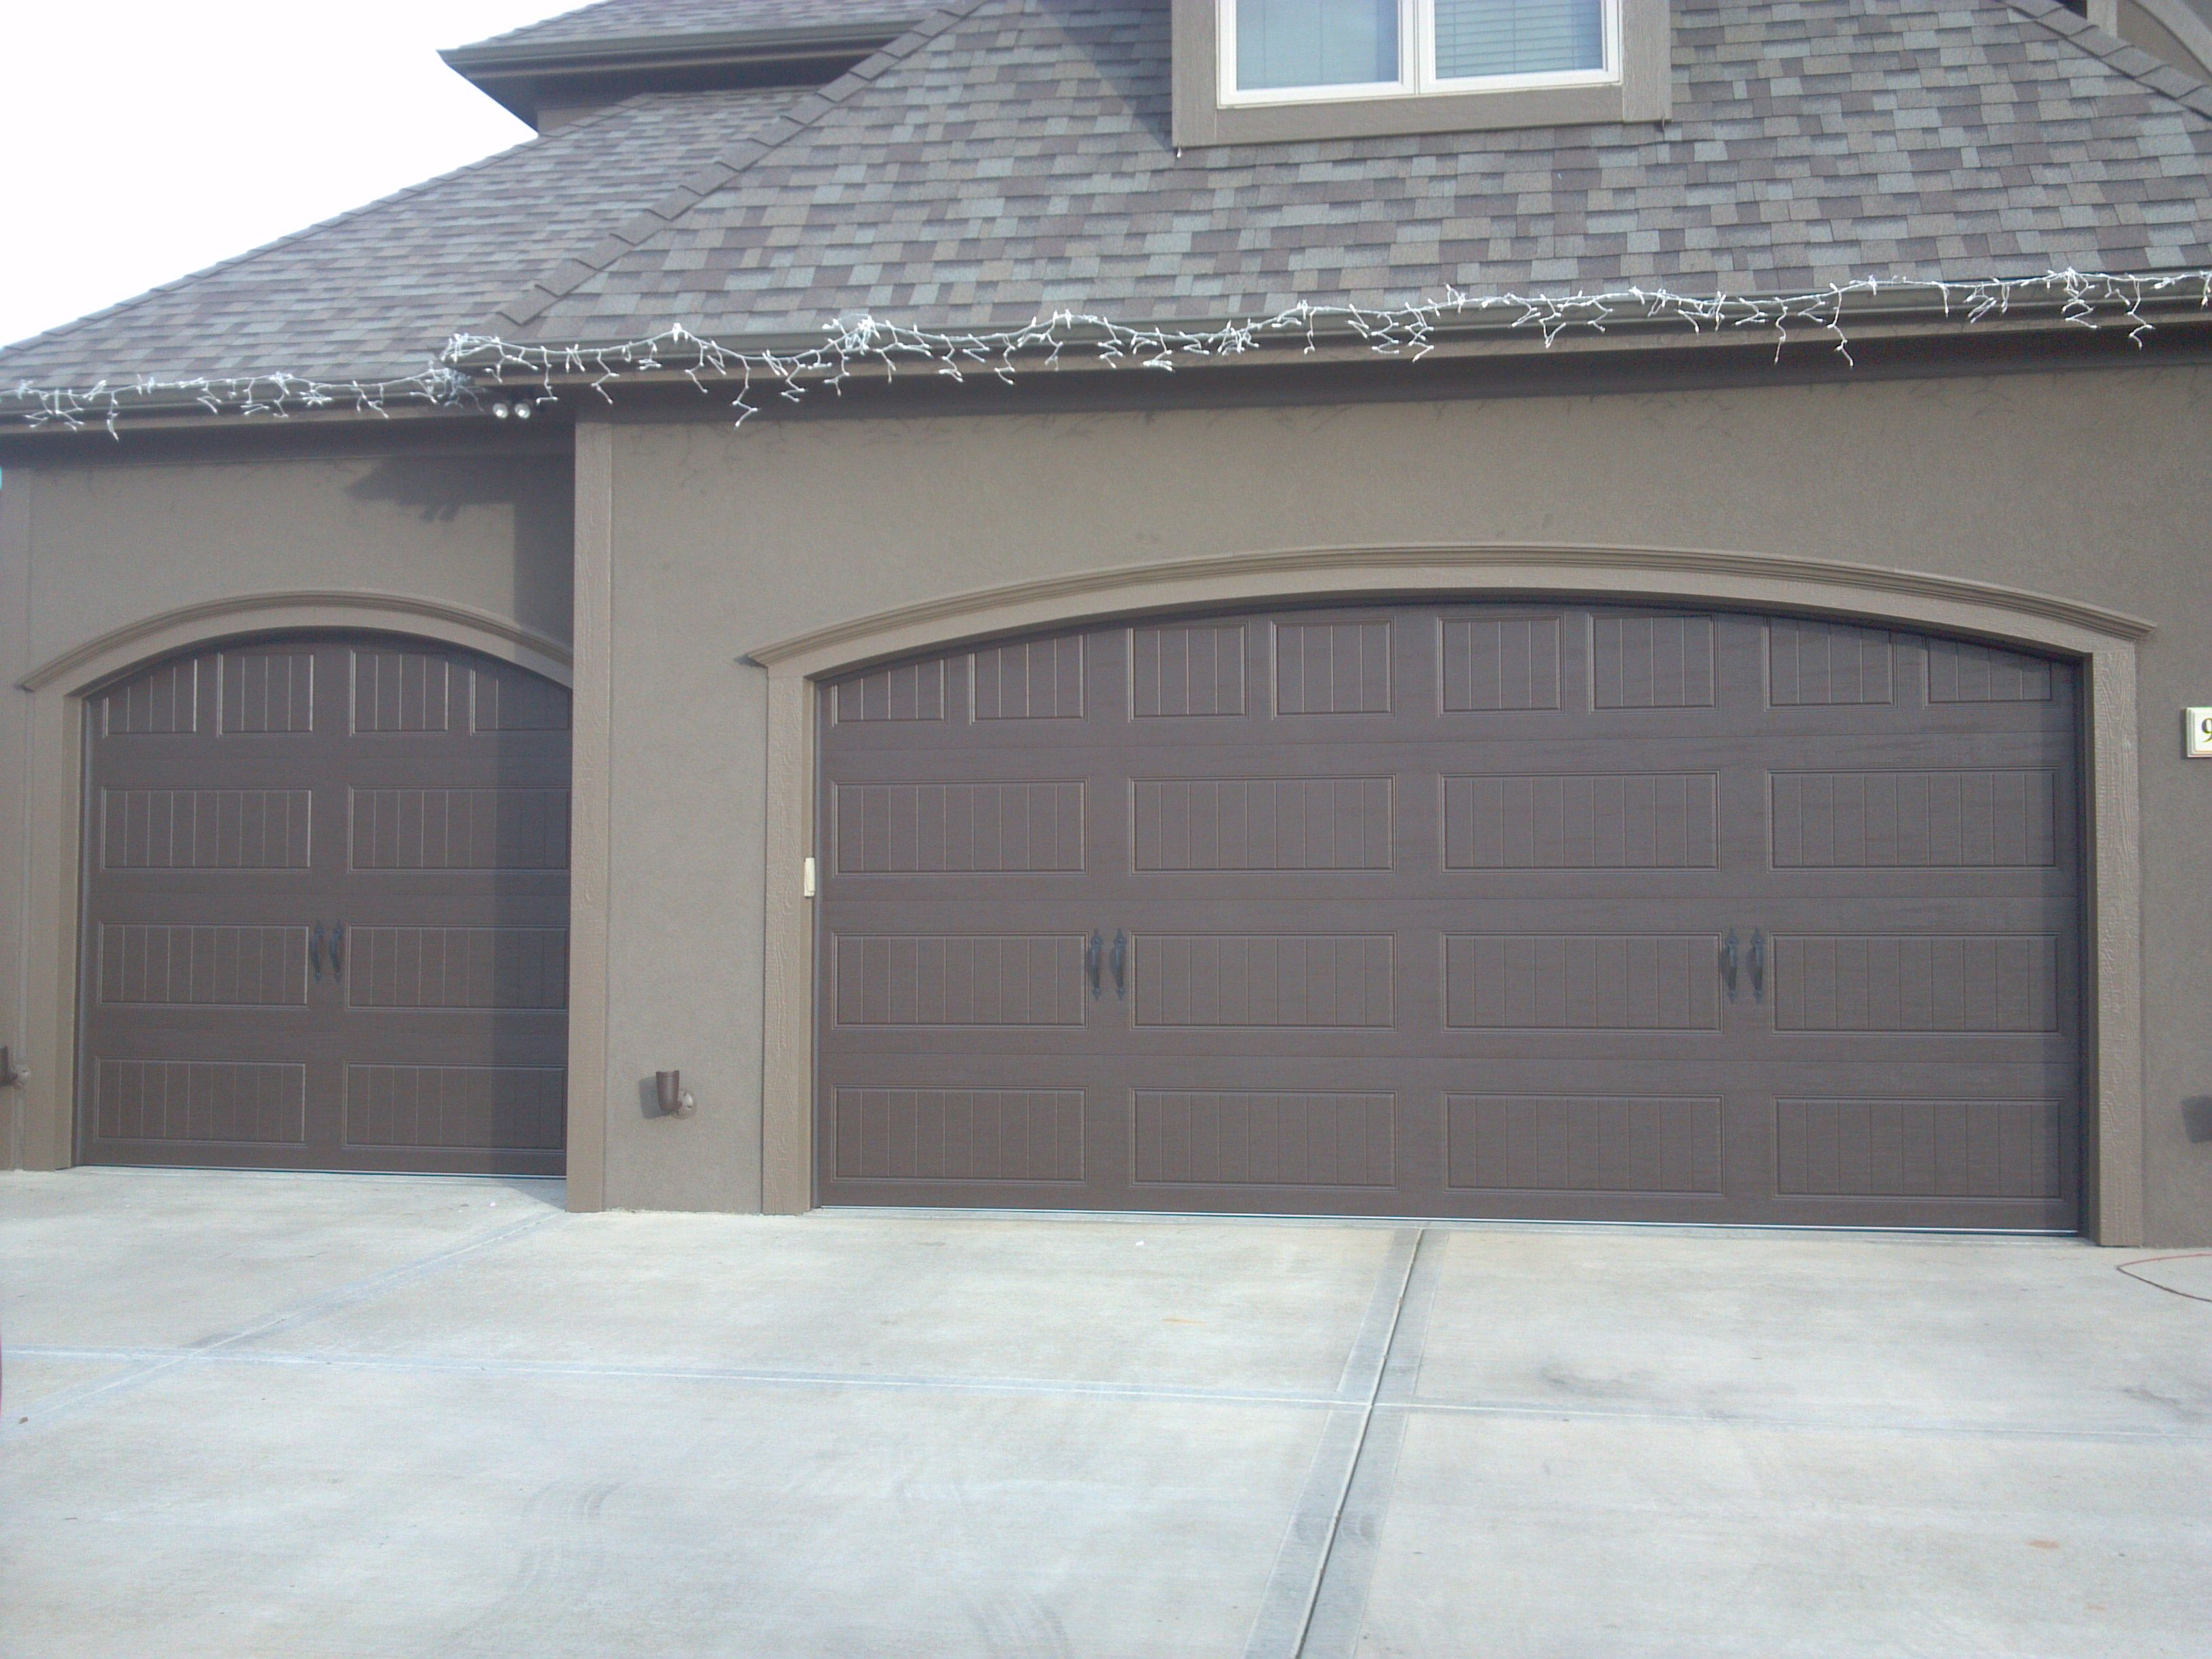 systems toggle et hydrodoors grove garage city brano navigation doortronix door installations repairs